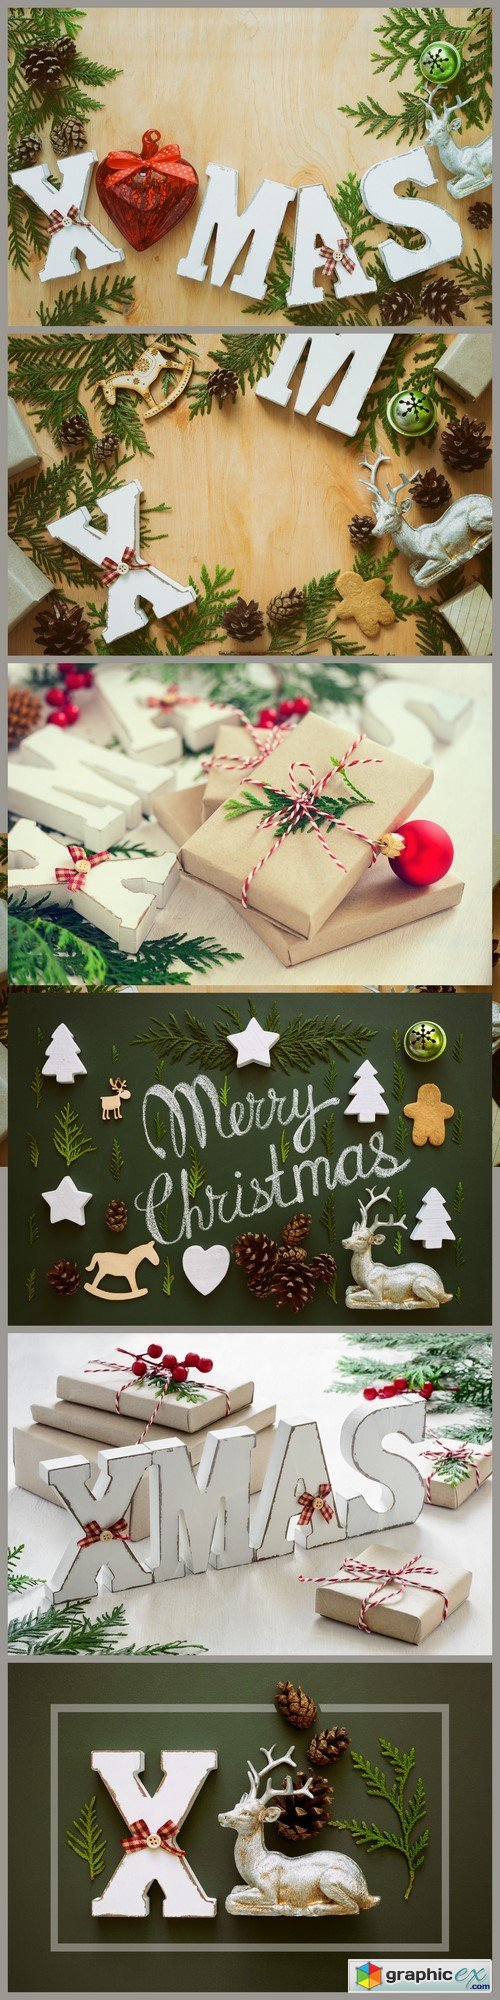 Christmas greeting card 6X JPEG